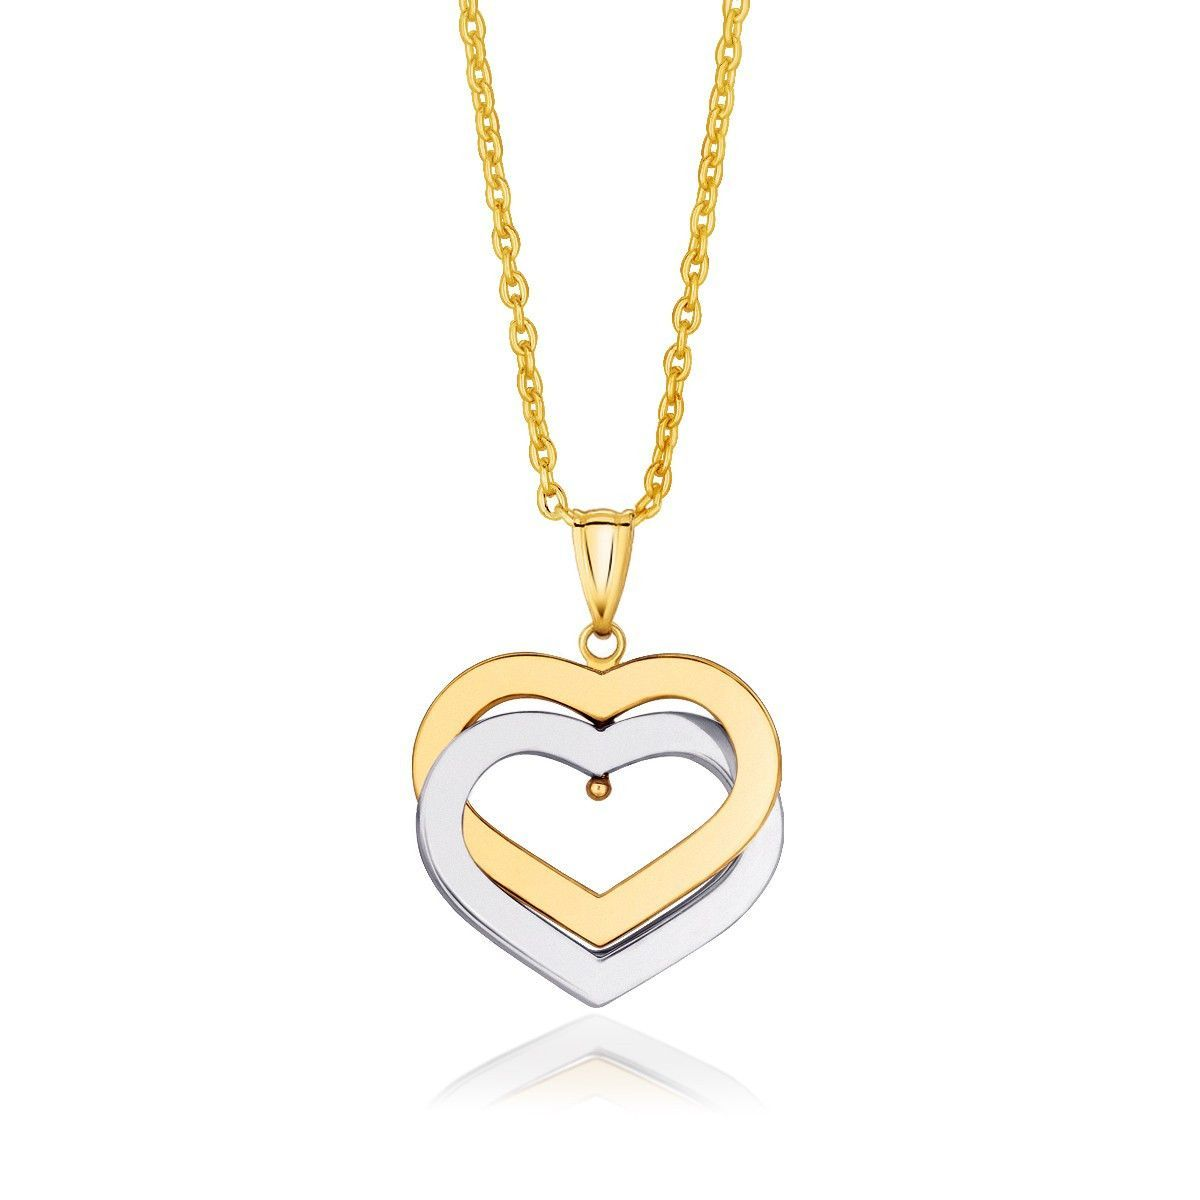 Two hearts become one in this expertly crafted drop pendant. A center headpin allows the 14K white gold heart to gently move in its embrace with the 14K yellow gold heart above. Featuring movement and